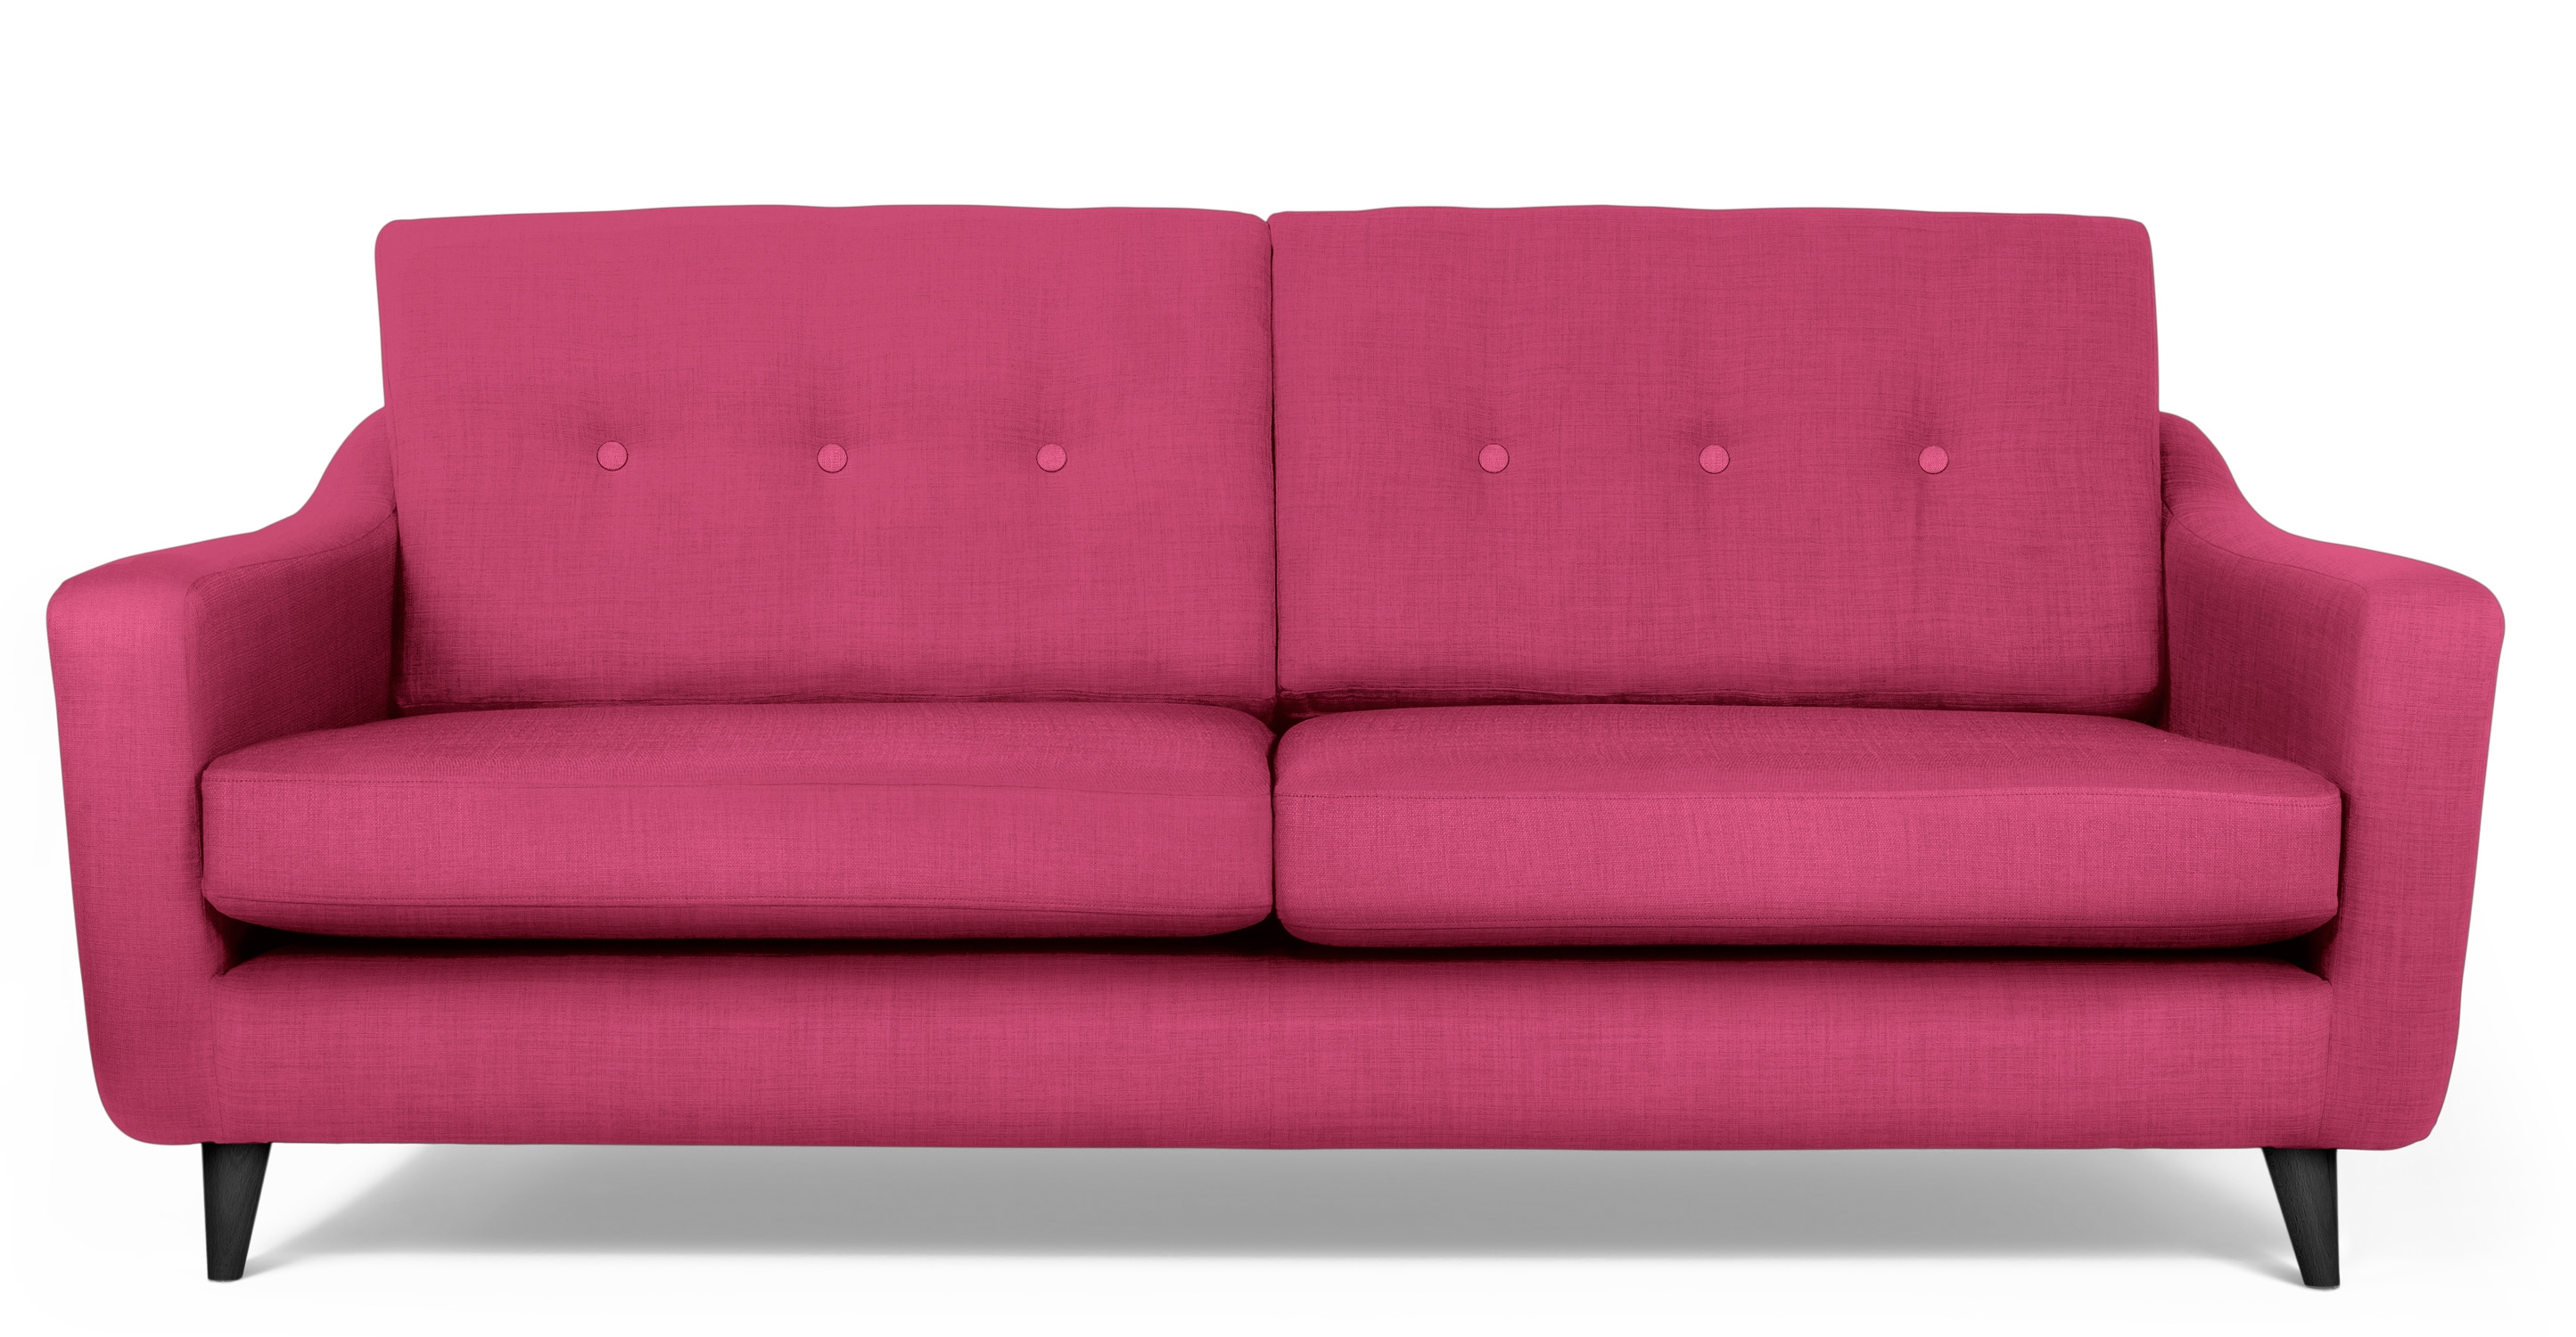 A Modern Pink Sofa Is Curly What I M Coveting Sofas Are Sprinkled In Magazine Layouts Pinterest And Blogs Love